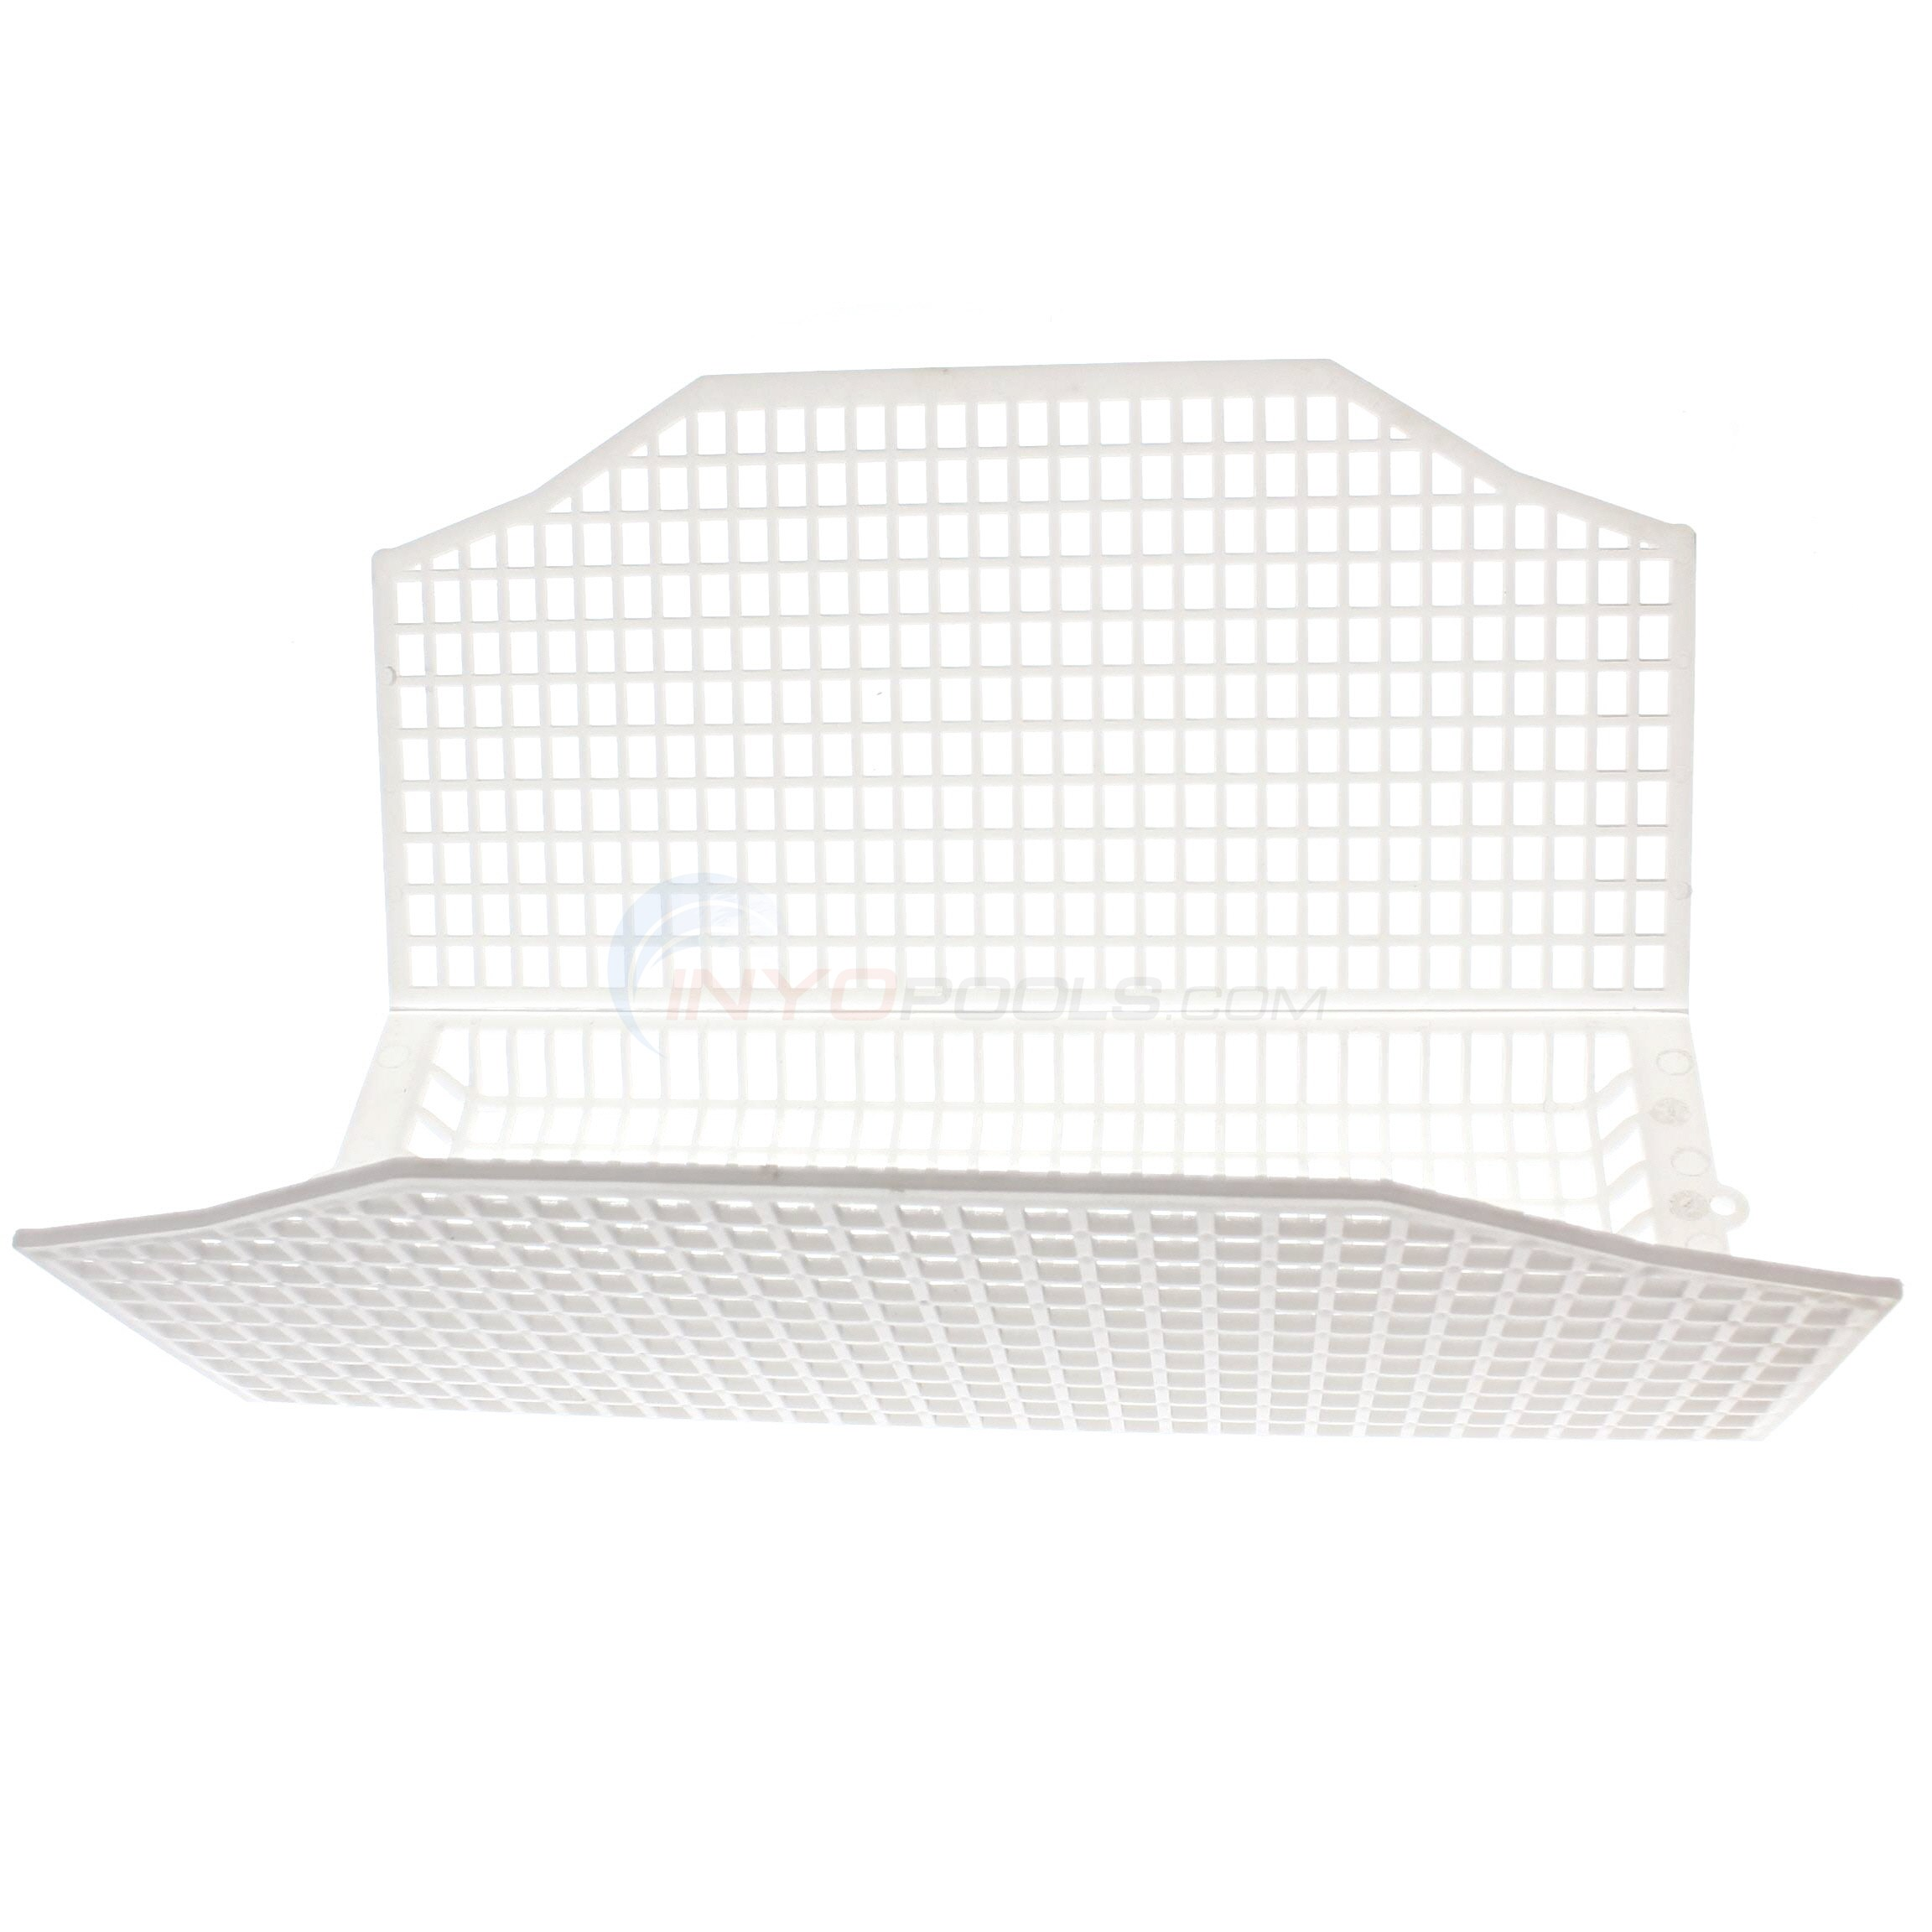 Maytronics Filter Screen Deluxe 4/5/dx6 (9980627)